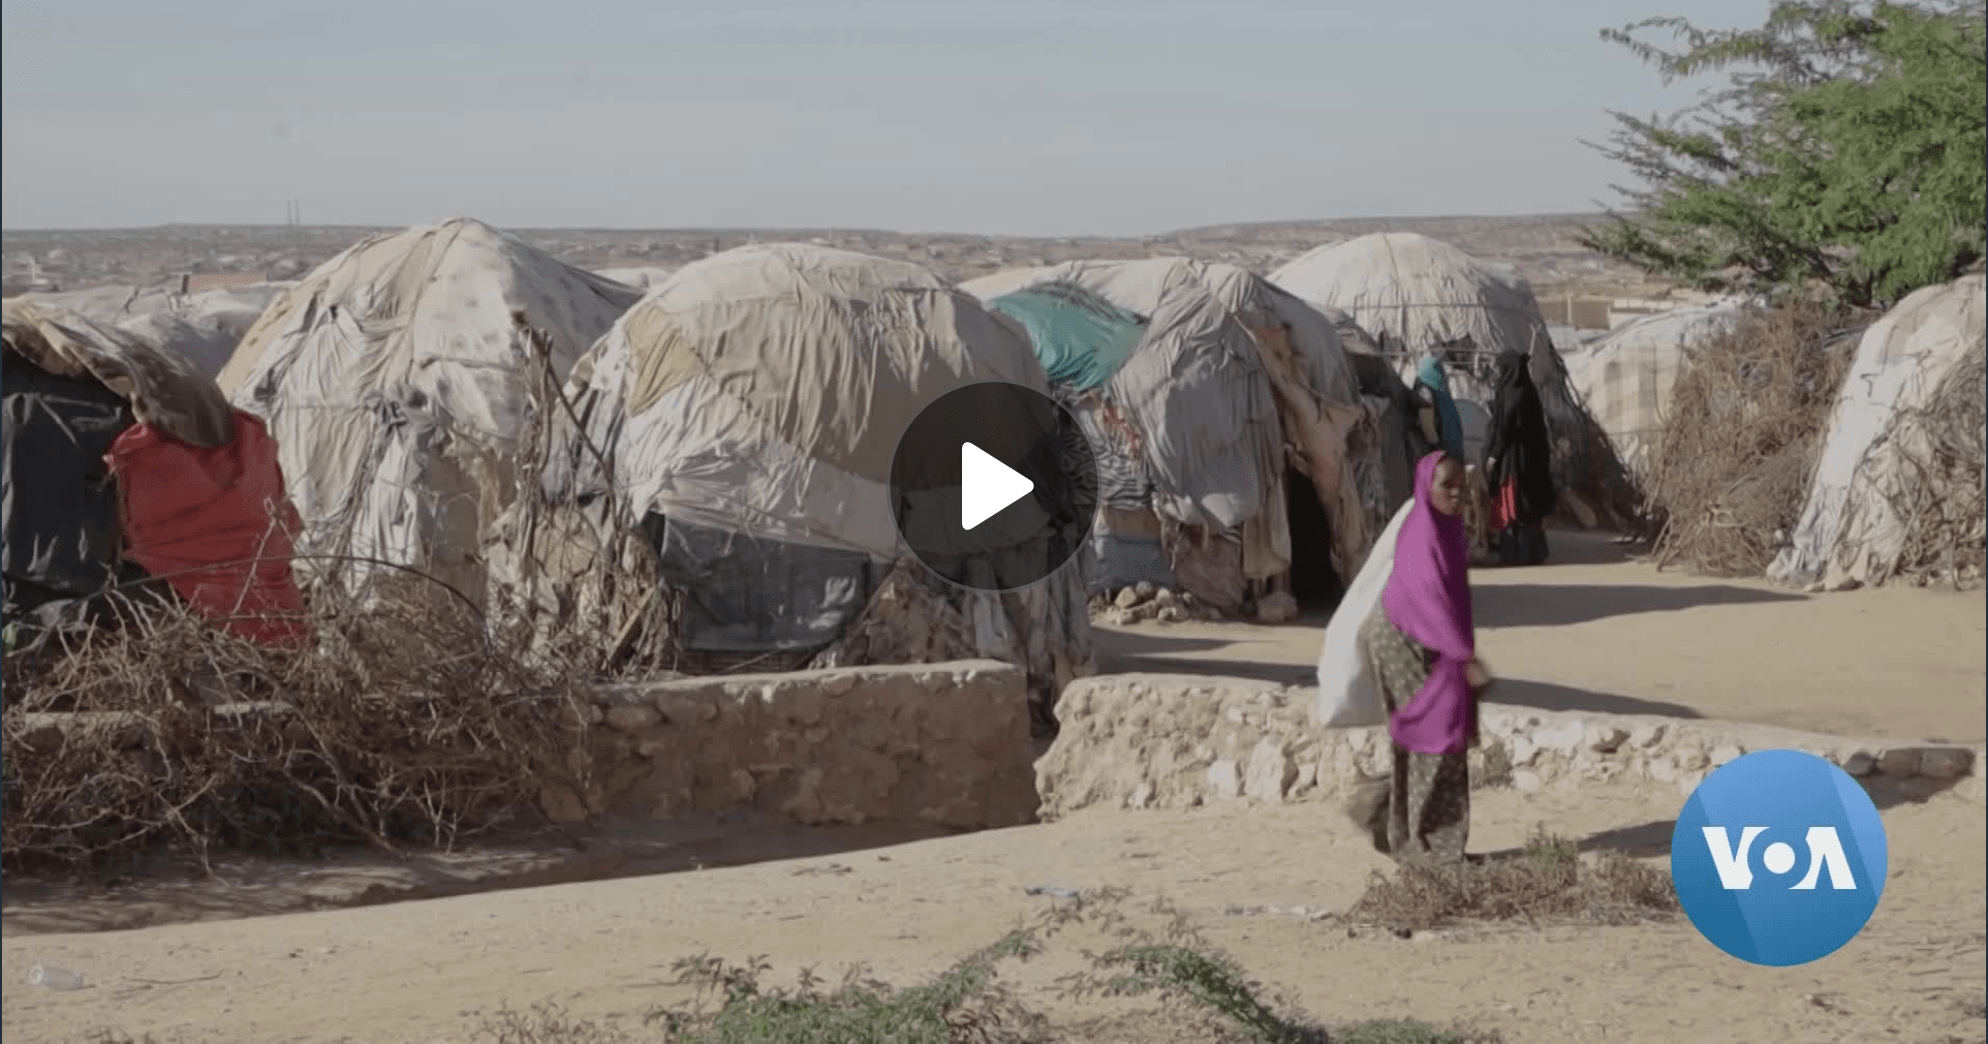 Climate Change Drives Gender-Based Violence in Somaliland – Voice of America (image)